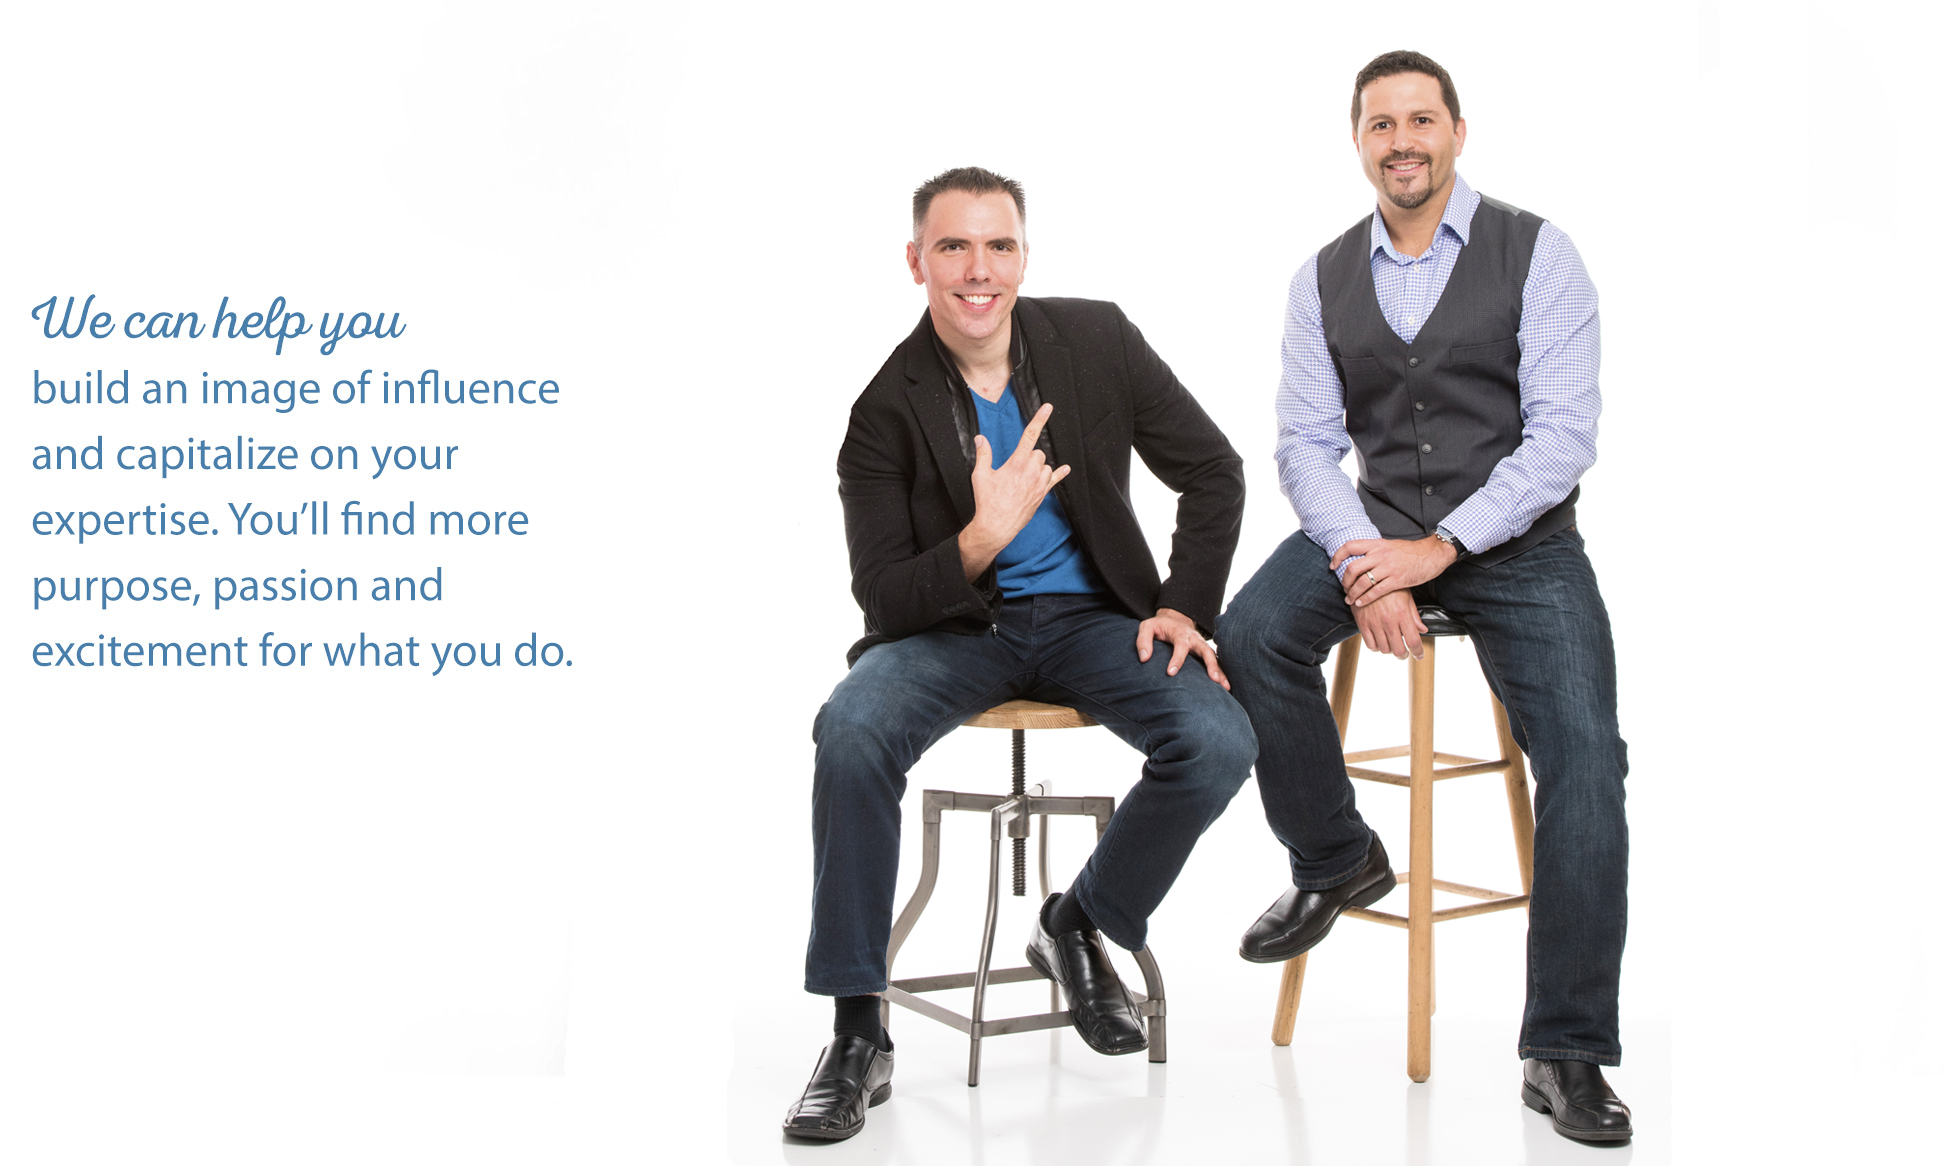 Build an Image of Influence